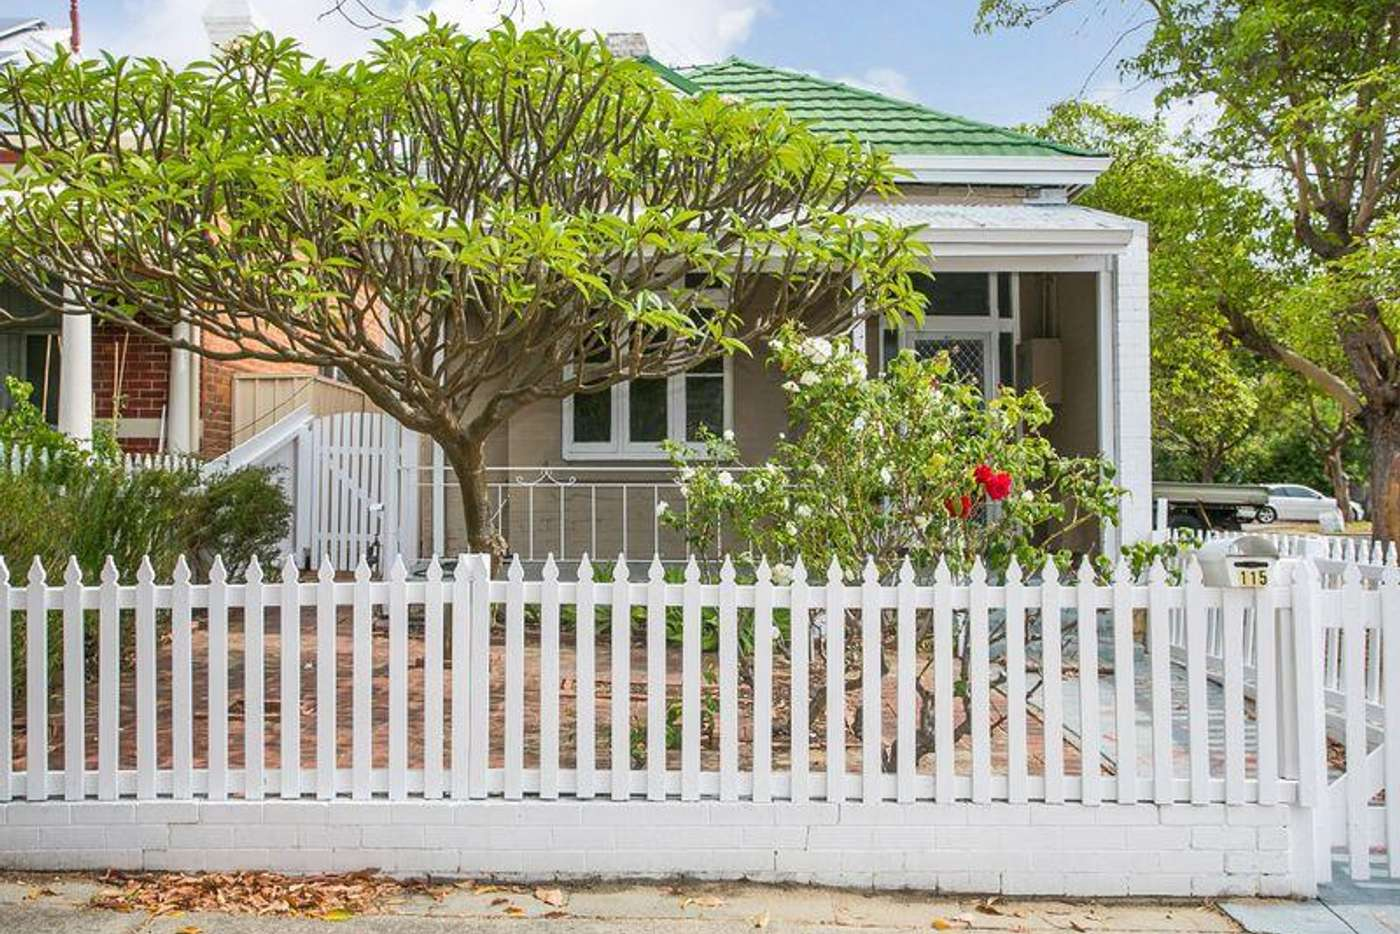 Main view of Homely house listing, 115 Barker Road, Subiaco WA 6008